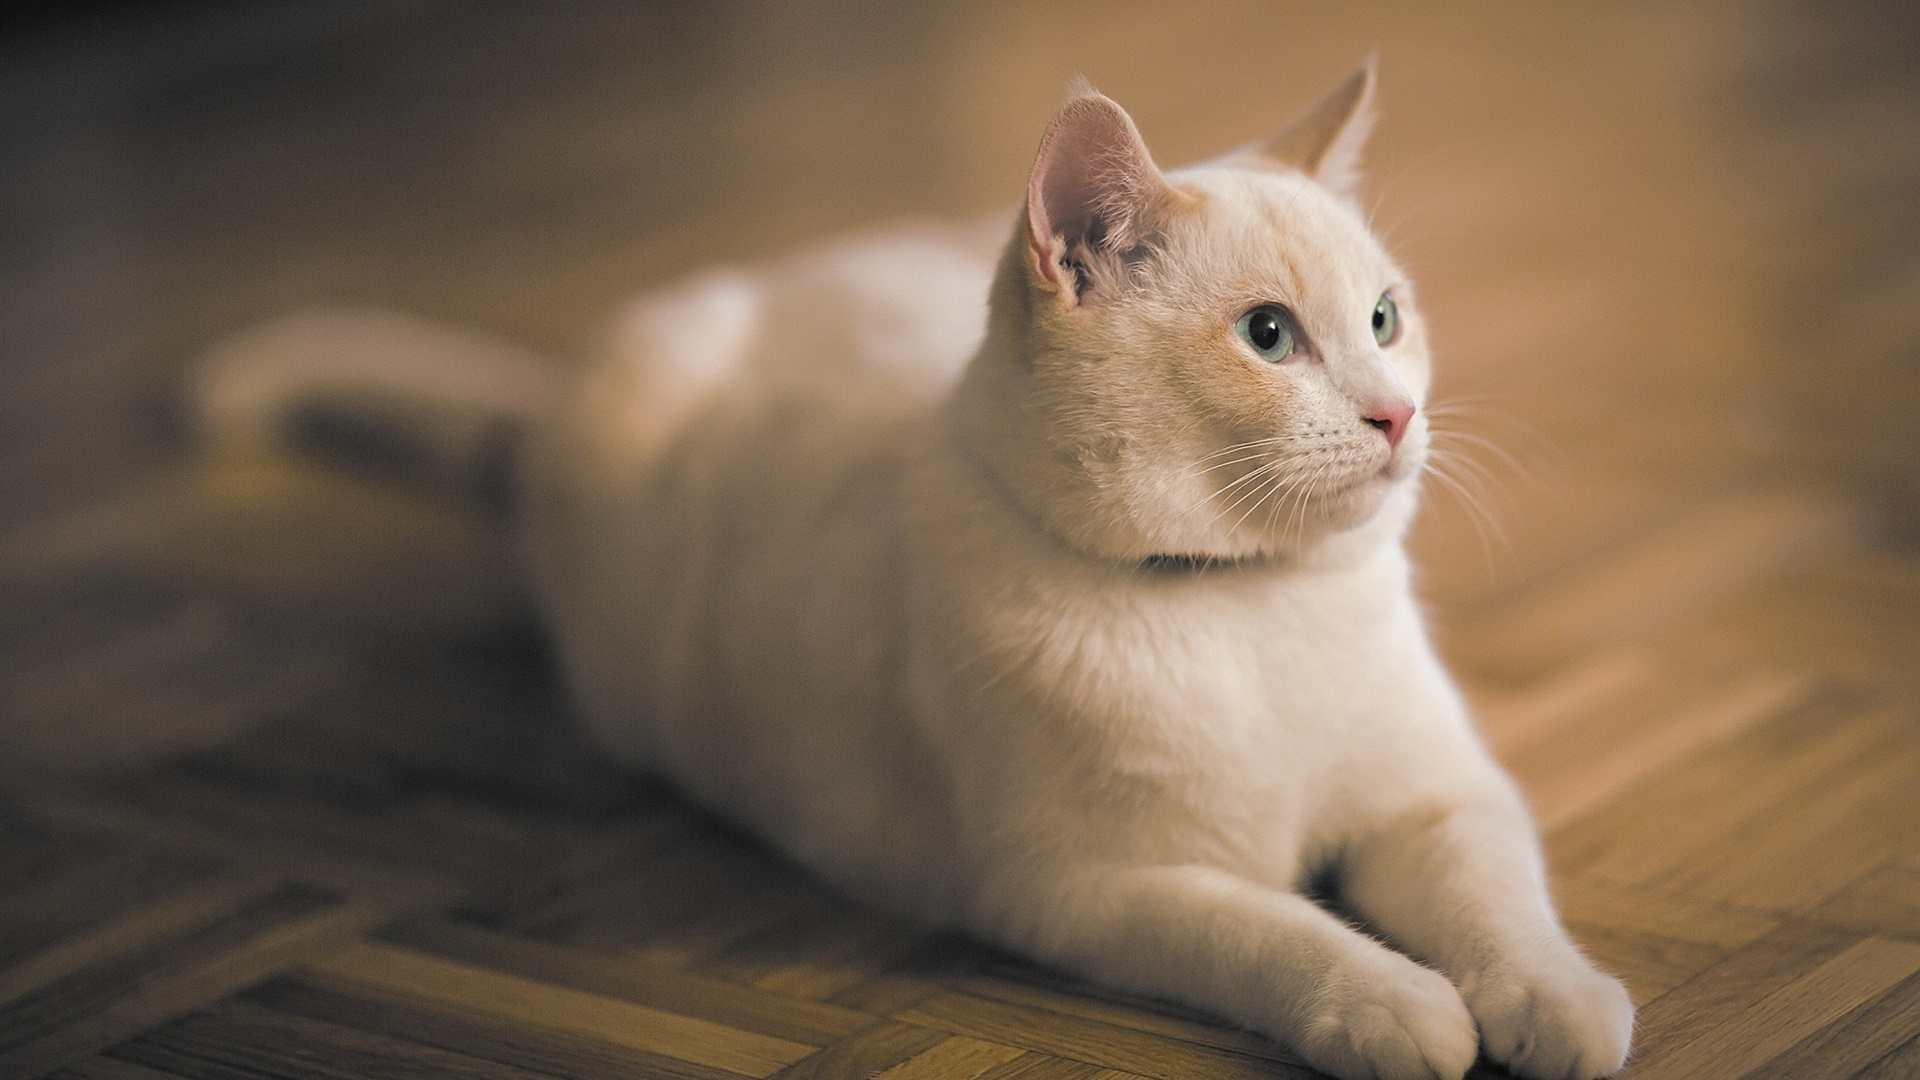 Wallpaper White Cat Stay On The Flooring 1920x1200 Hd Picture Image